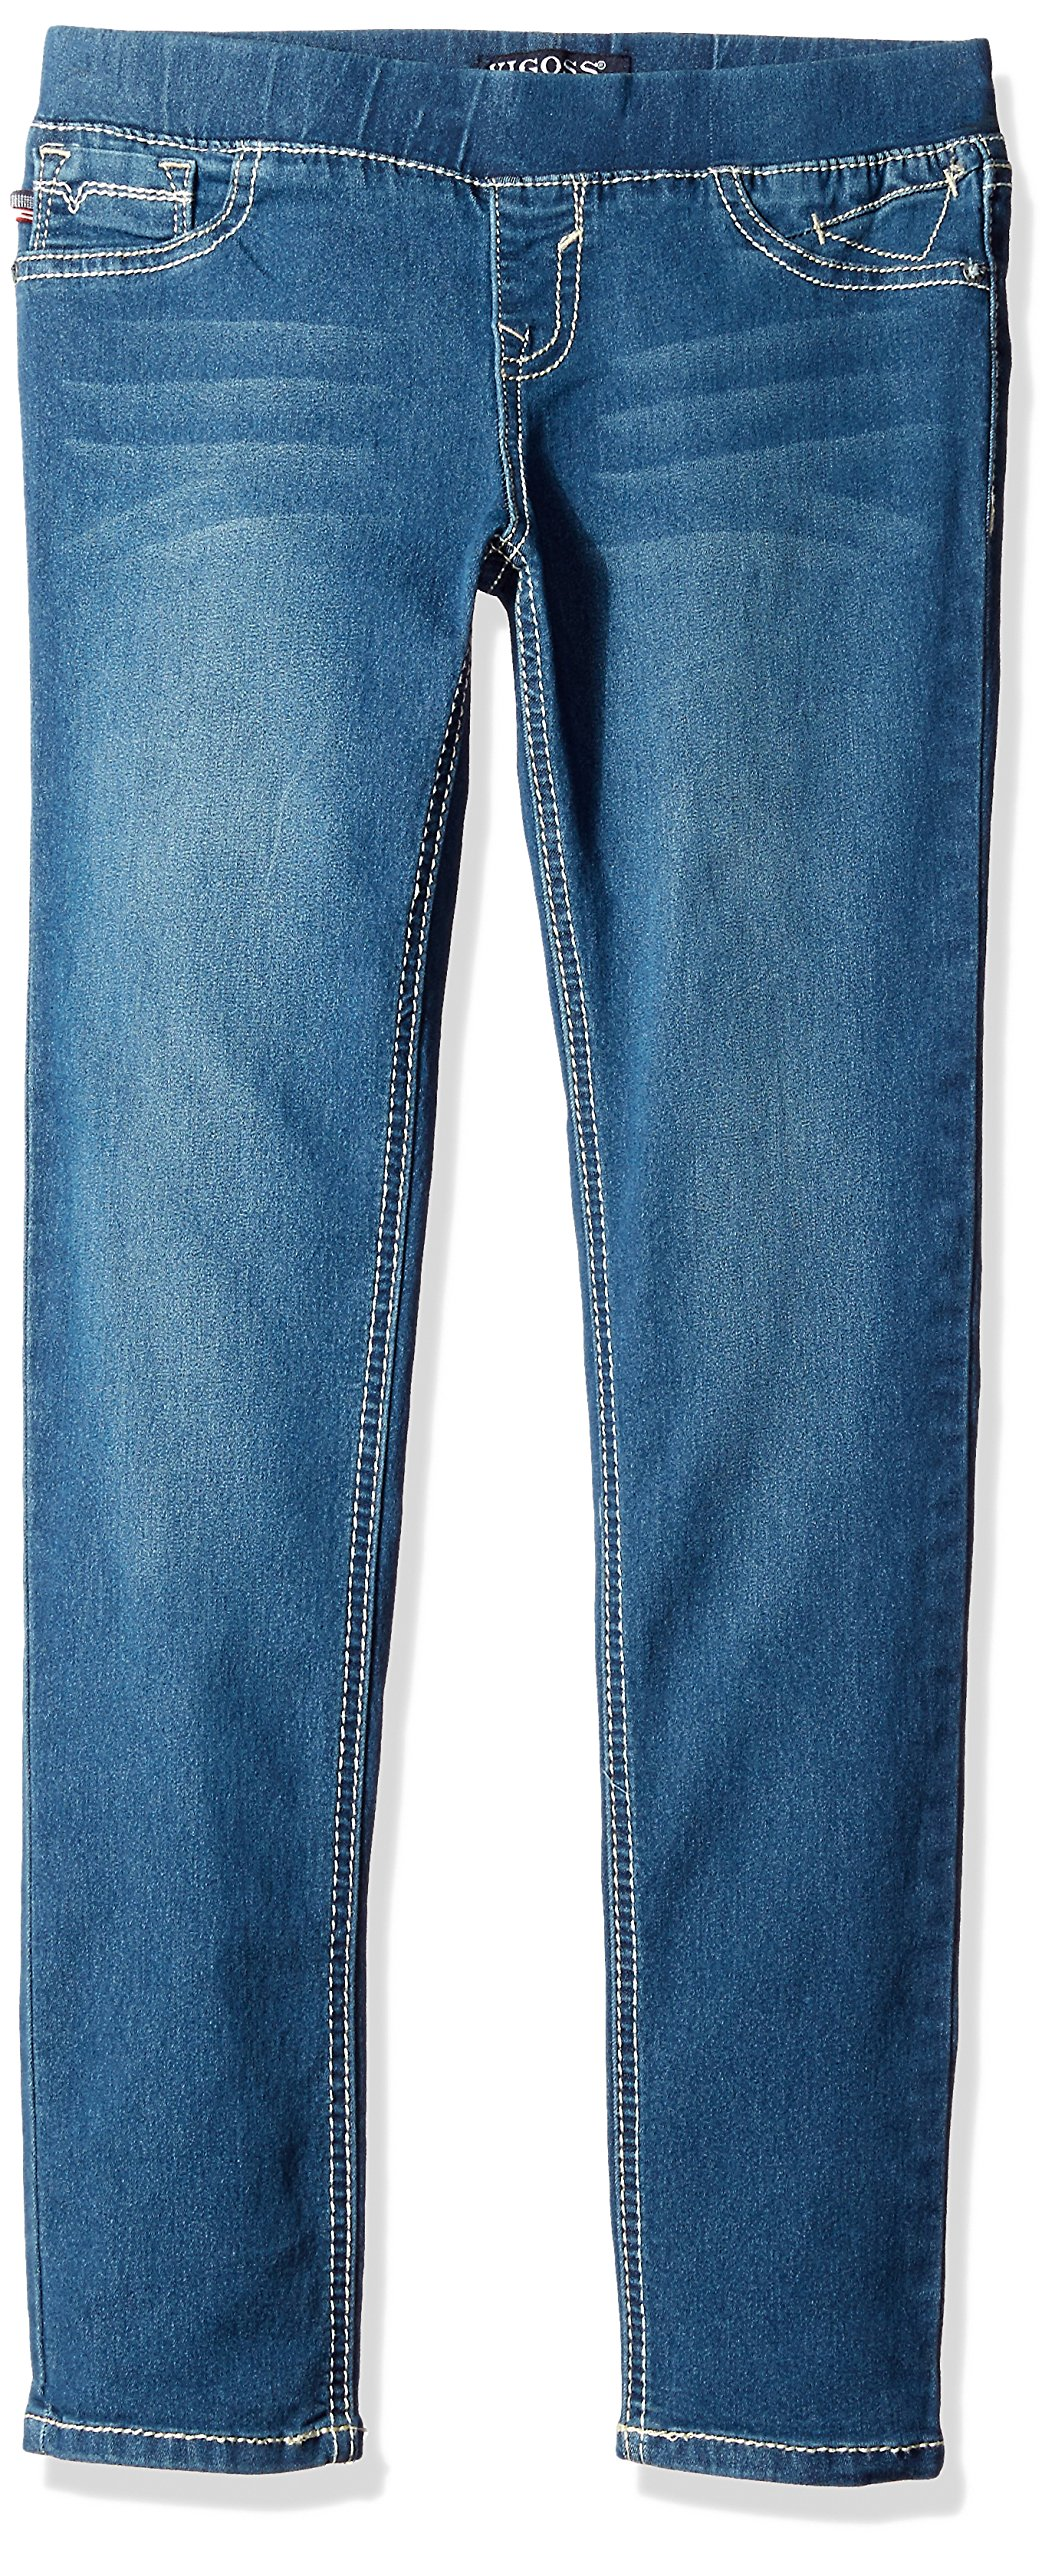 Vigoss Girls' Girls' 5 Pocket Classic Pull on Skinny Jean, Blueberry Cream, 4T